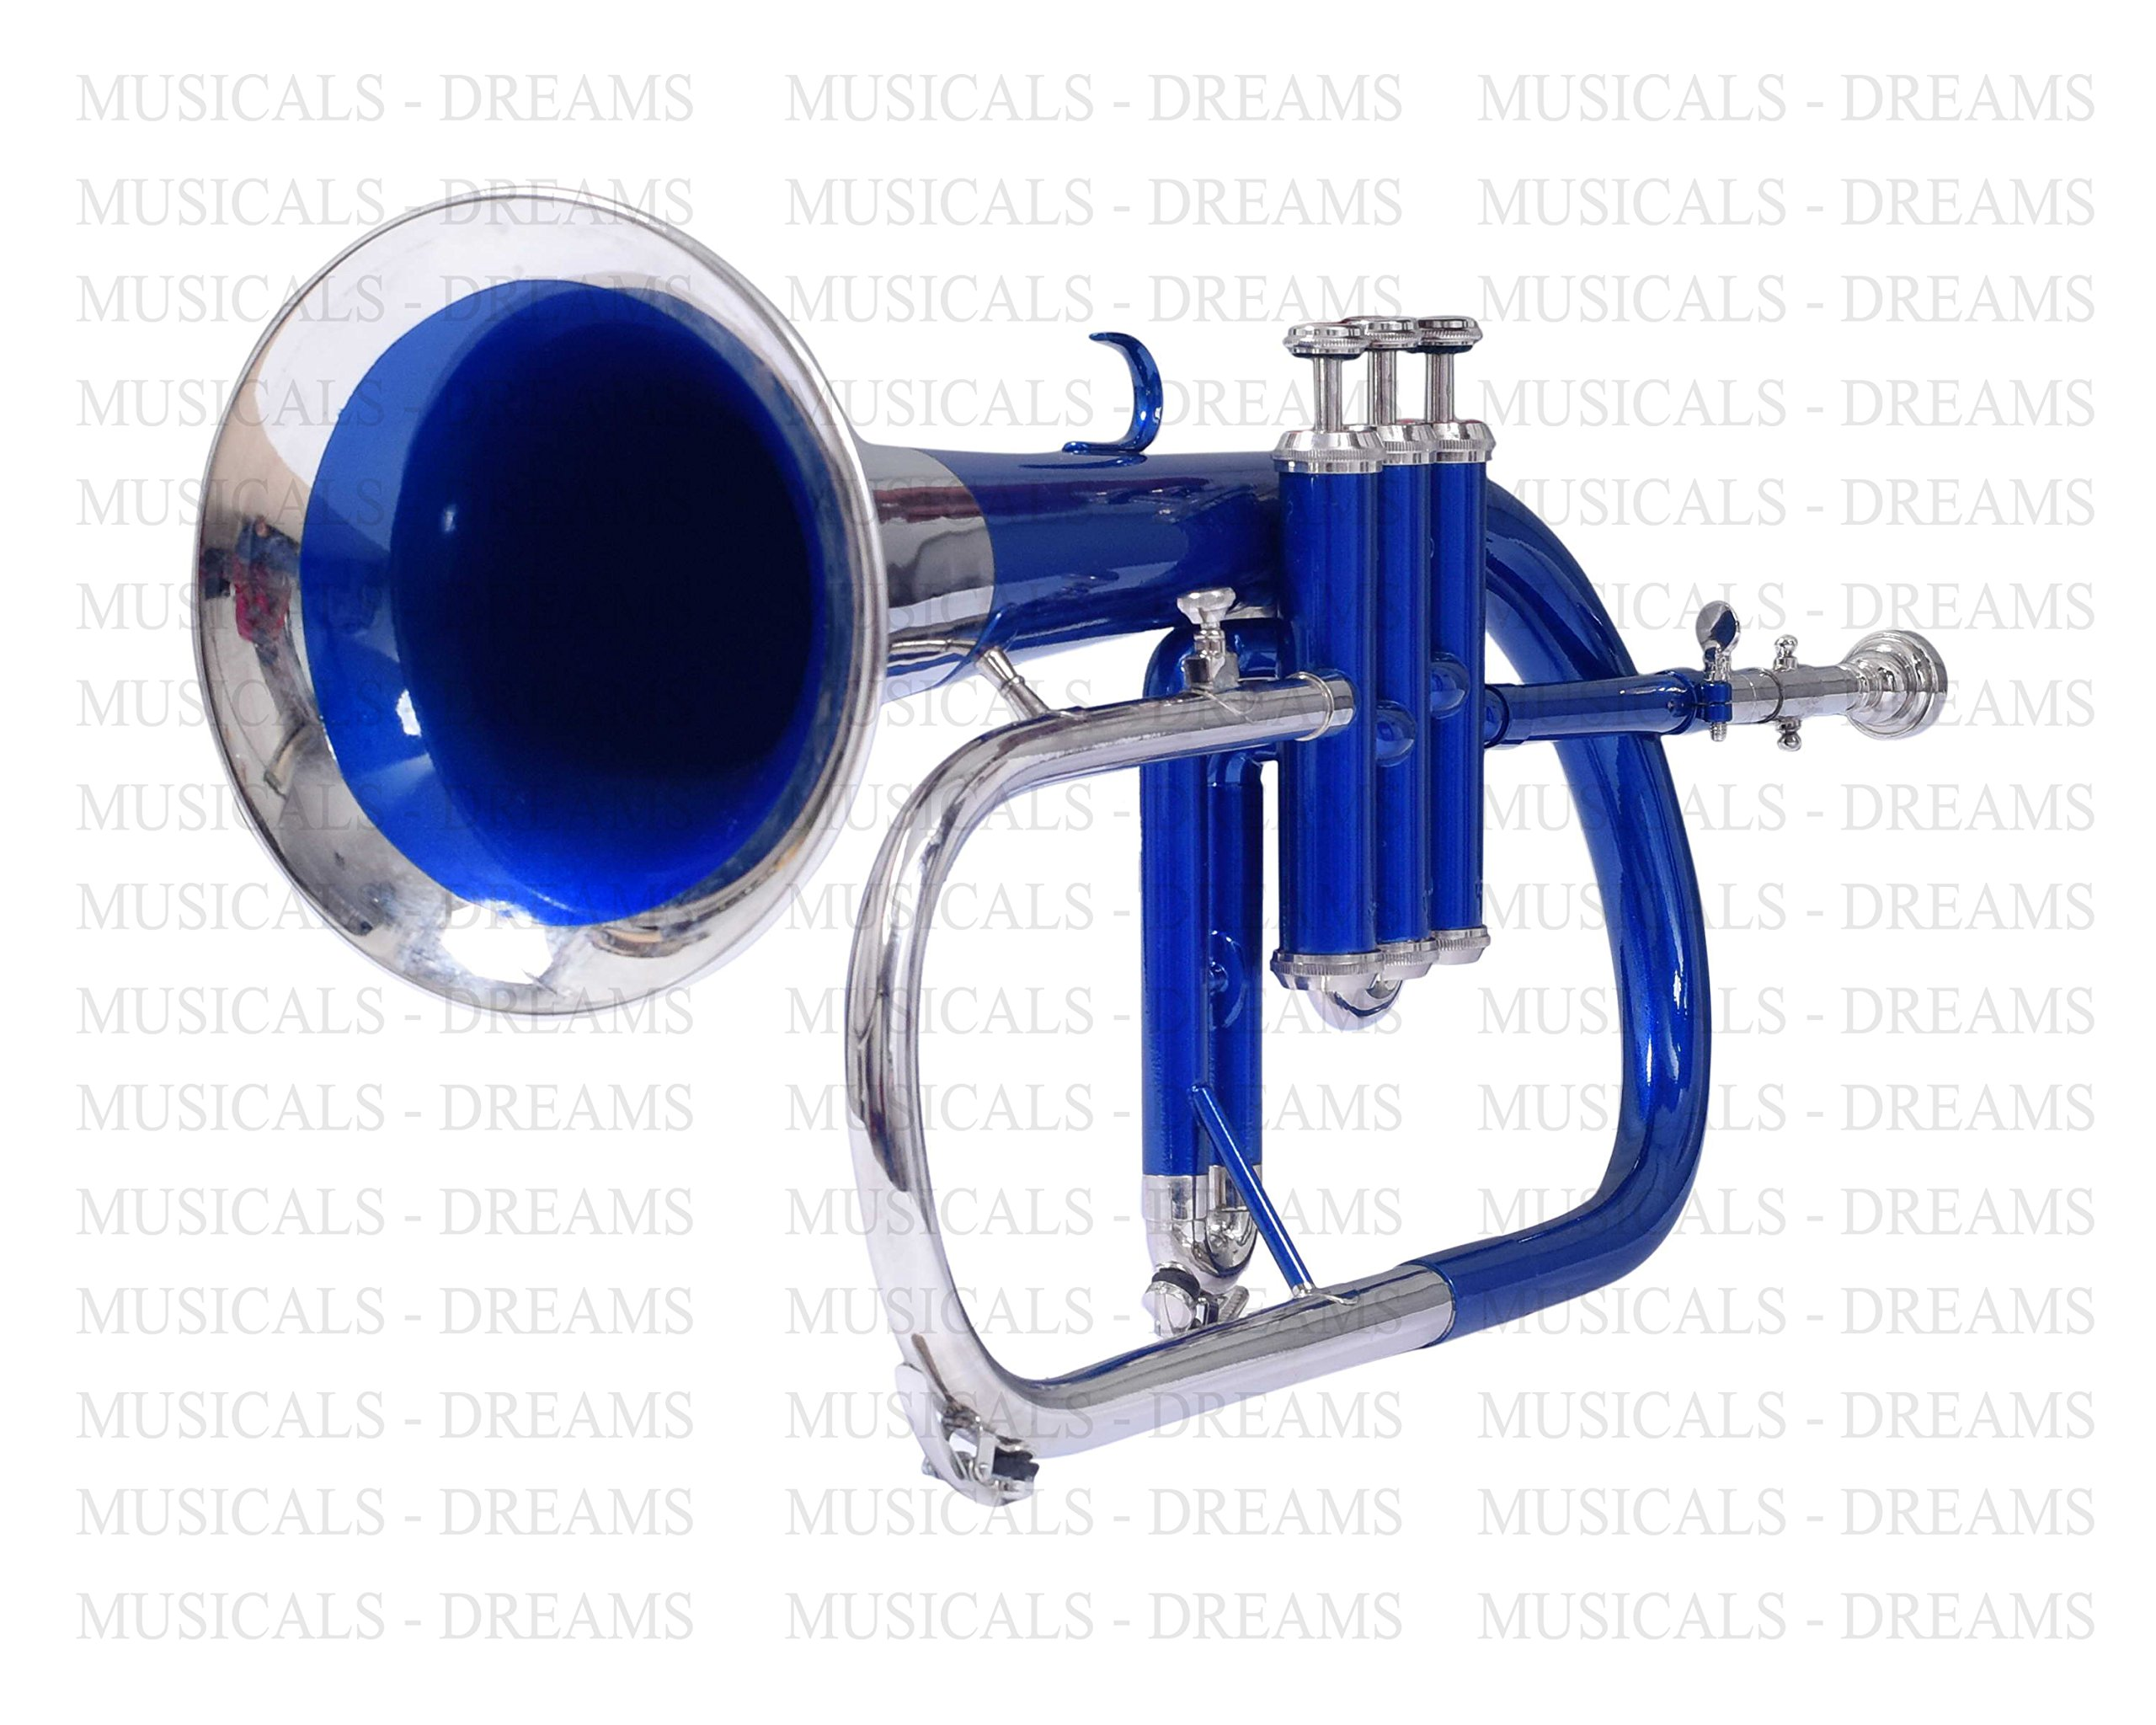 FLUGEL HORN 3 VALVE Bb PITCH FULL BLUE + NICKEL WITH FREE HARD CASE + MP